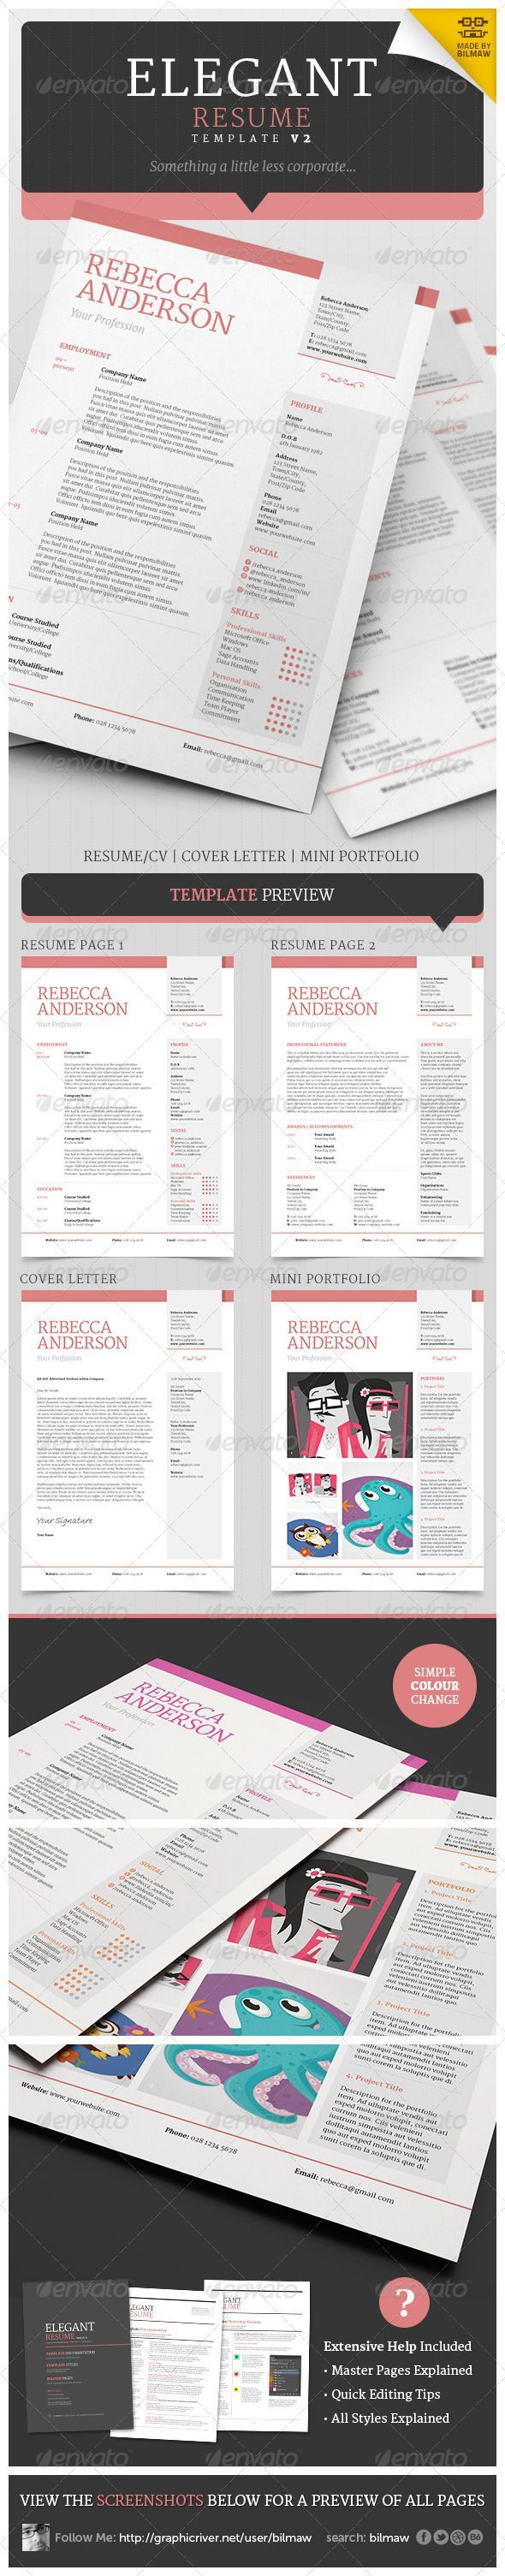 radio personality resume%0A Elegant Resume CV Template PSD  InDesign INDD  Download here  http